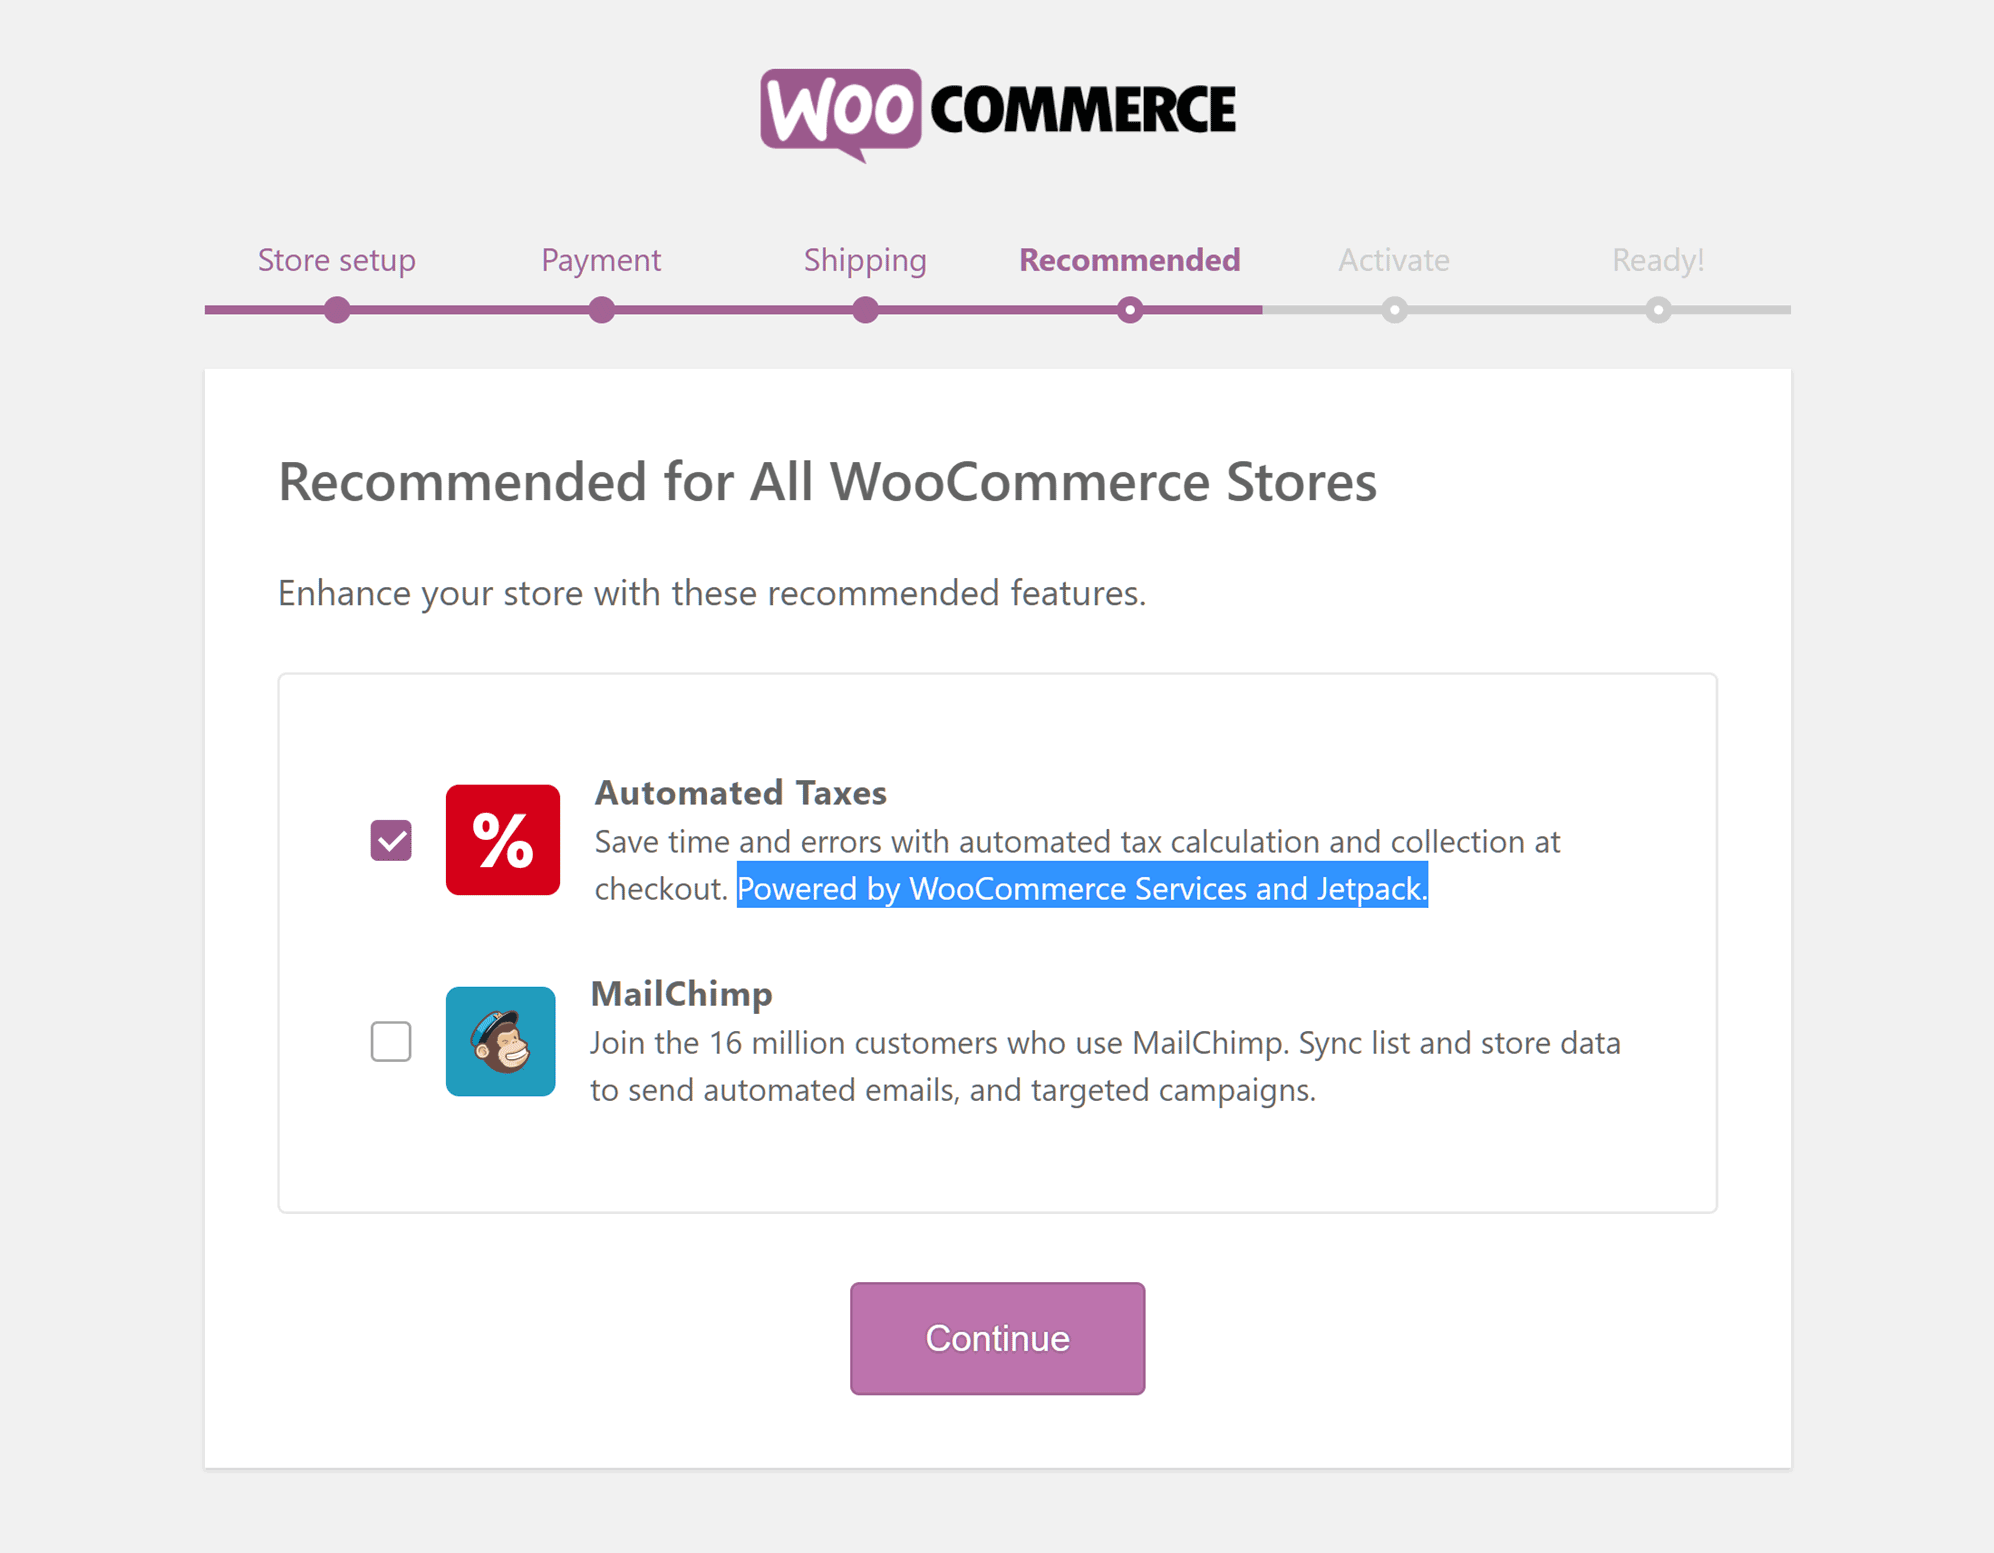 Enable WooCommerce Services